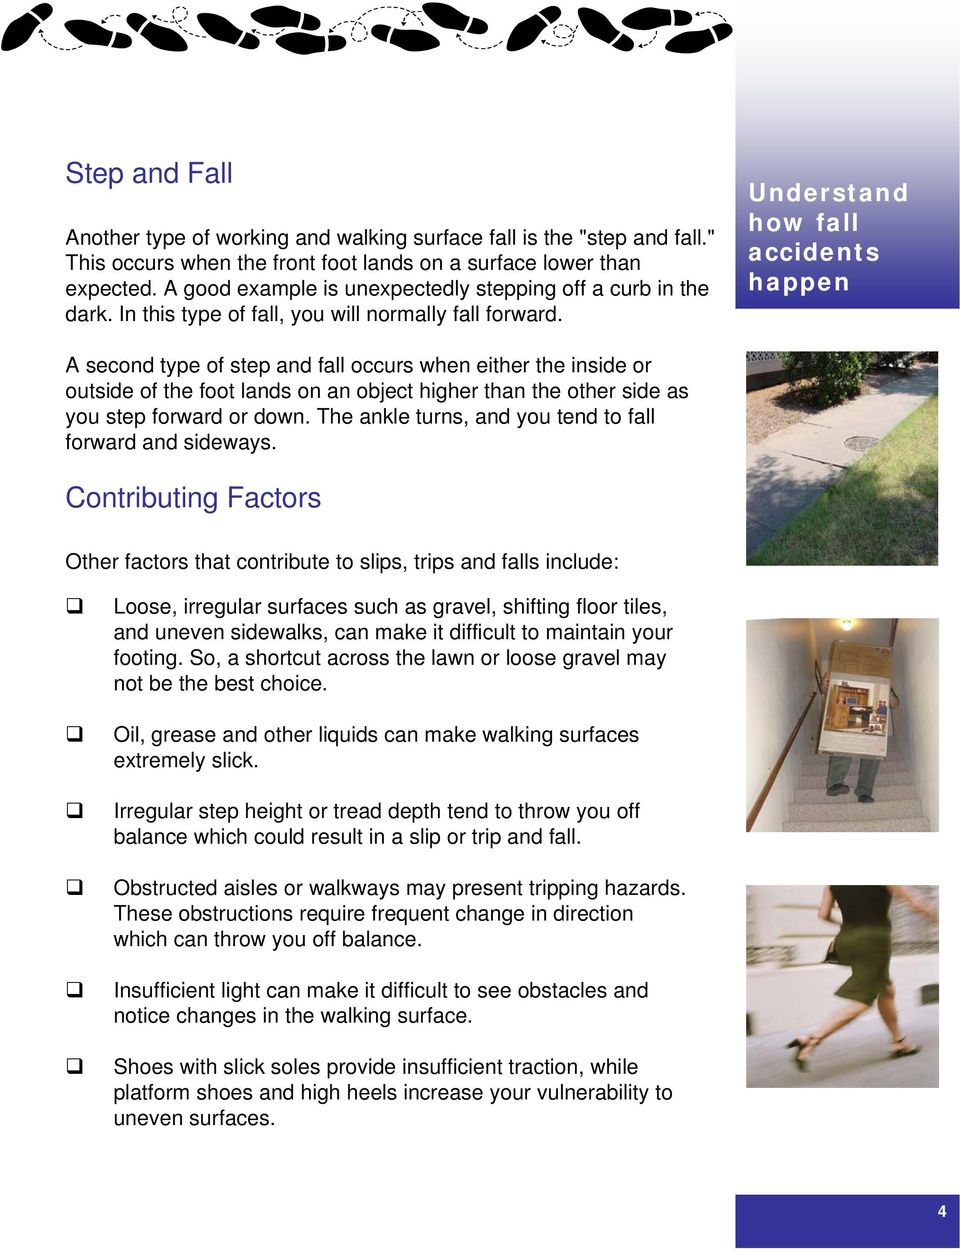 Understand how fall accidents happen A second type of step and fall occurs when either the inside or outside of the foot lands on an object higher than the other side as you step forward or down.